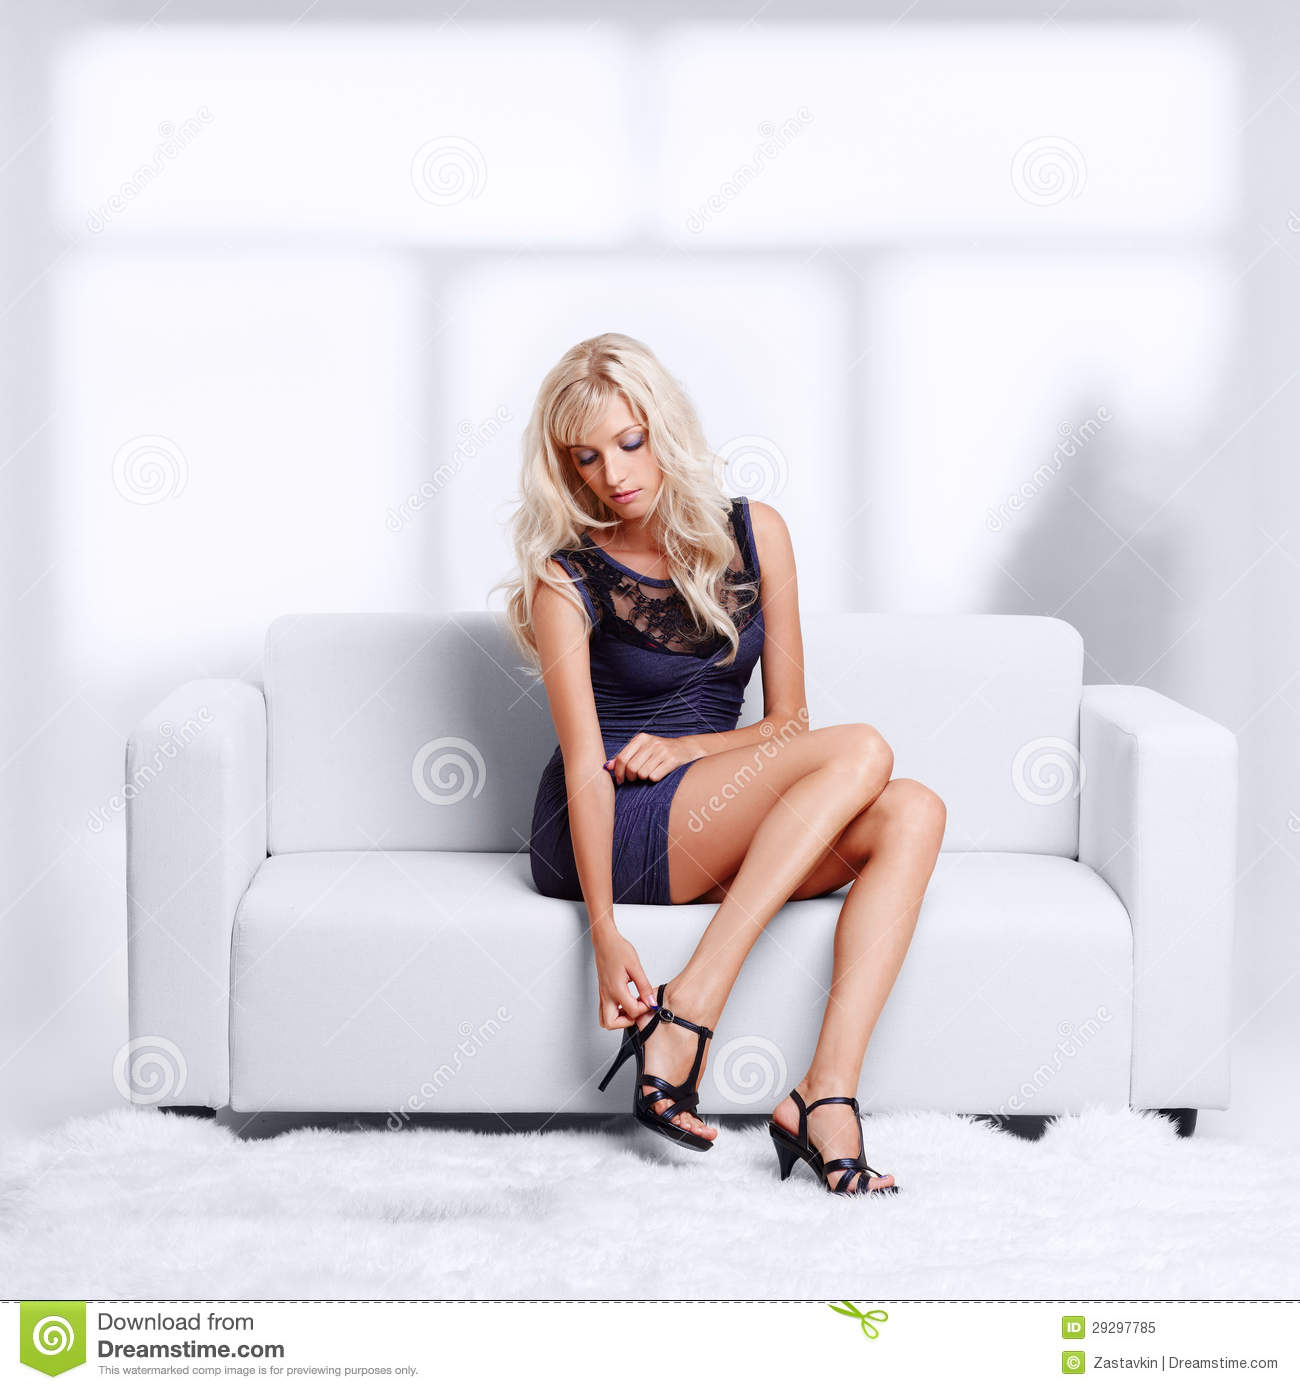 Free Sexmovie Blond Sofa Blond Girl On Sofa Royalty Free Stock Photo - Image: 29297785